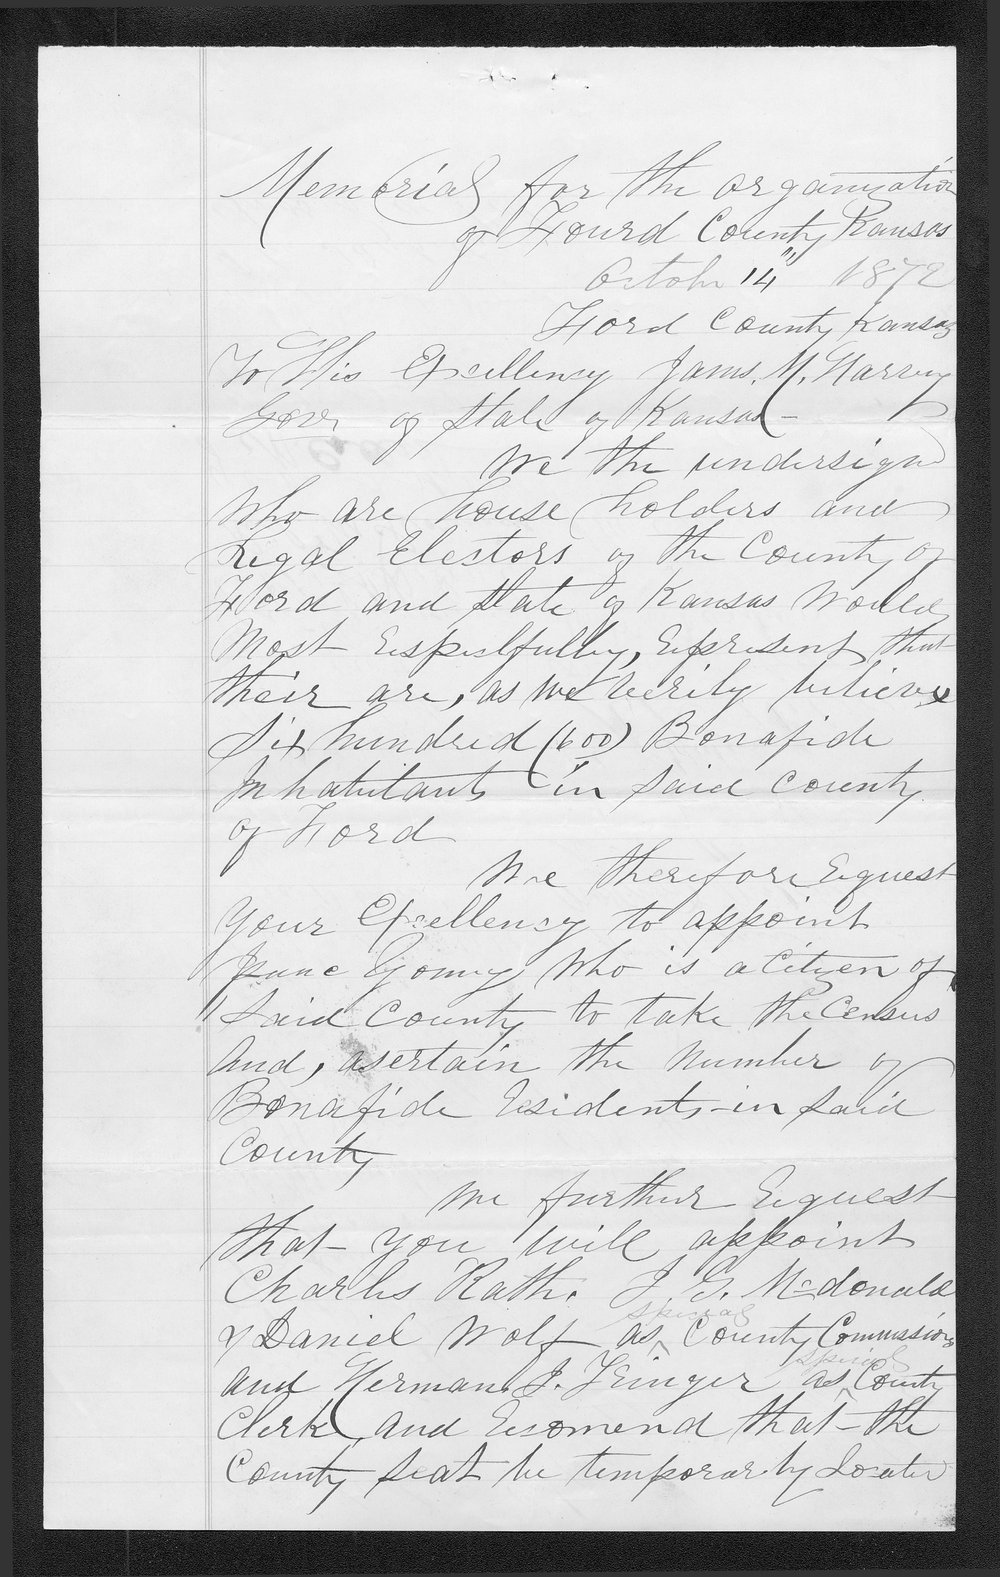 Ford County organization records - 2